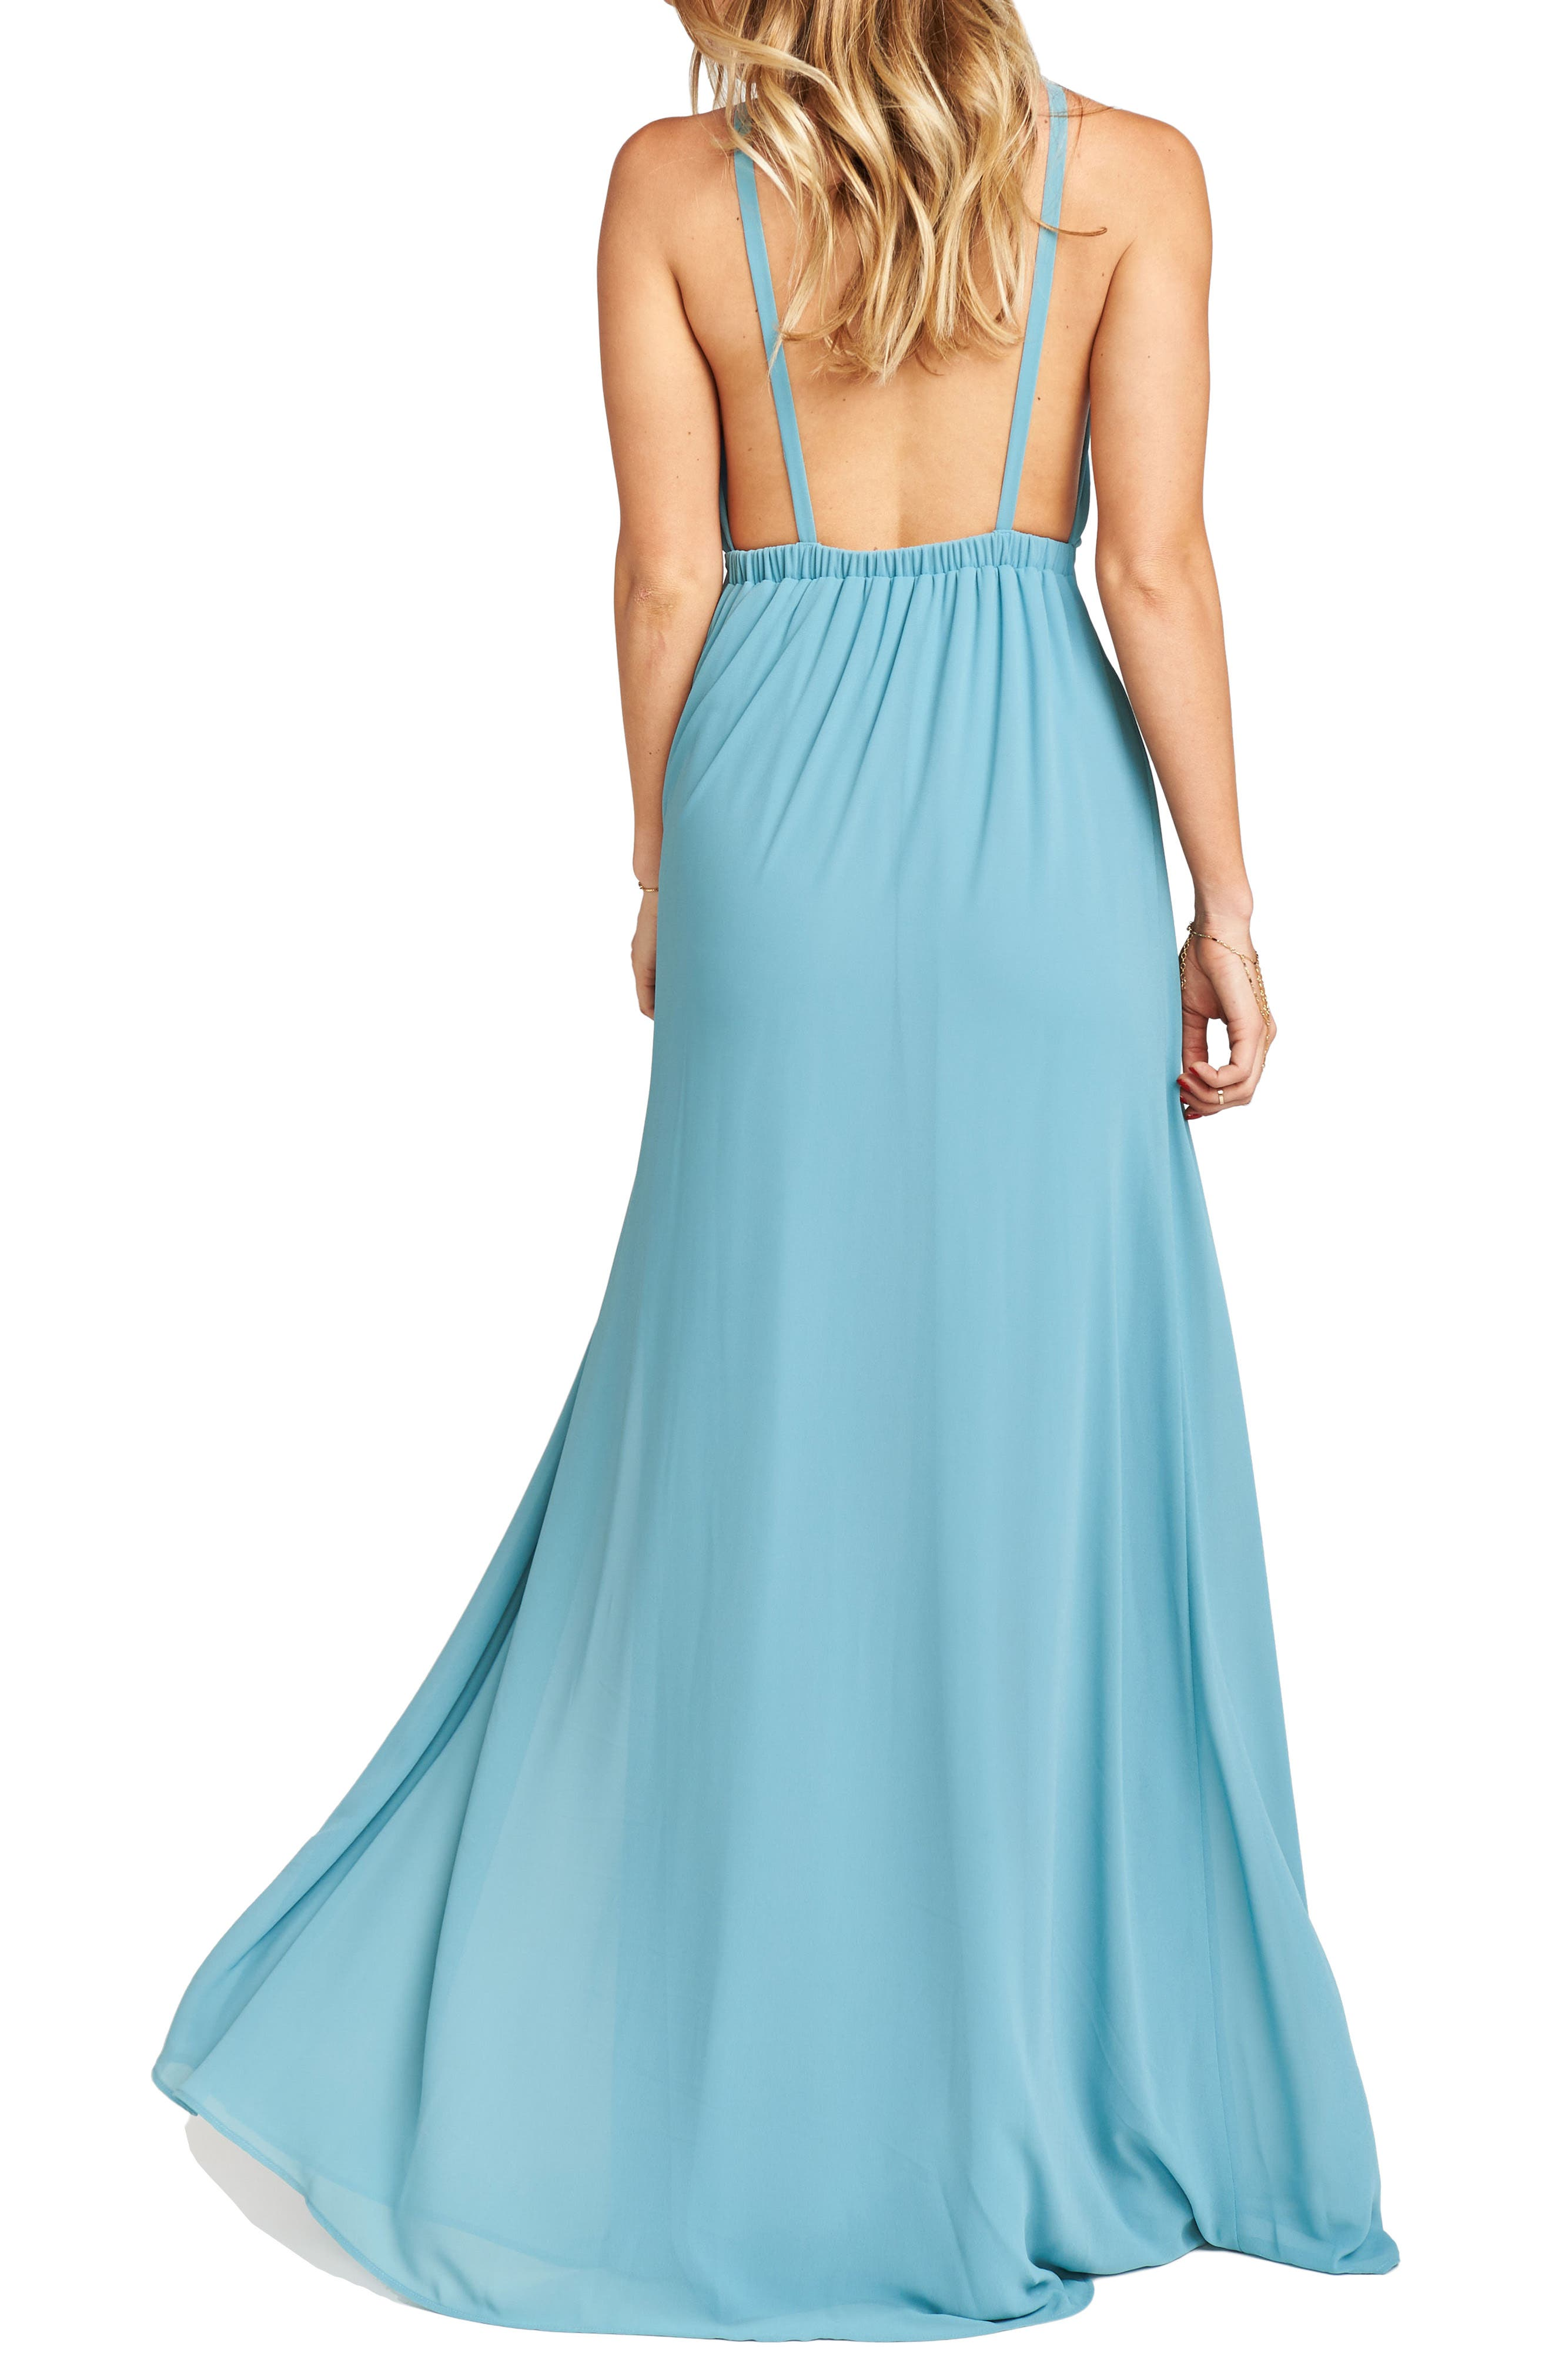 Amanda Open Back Blouson Gown,                             Alternate thumbnail 11, color,